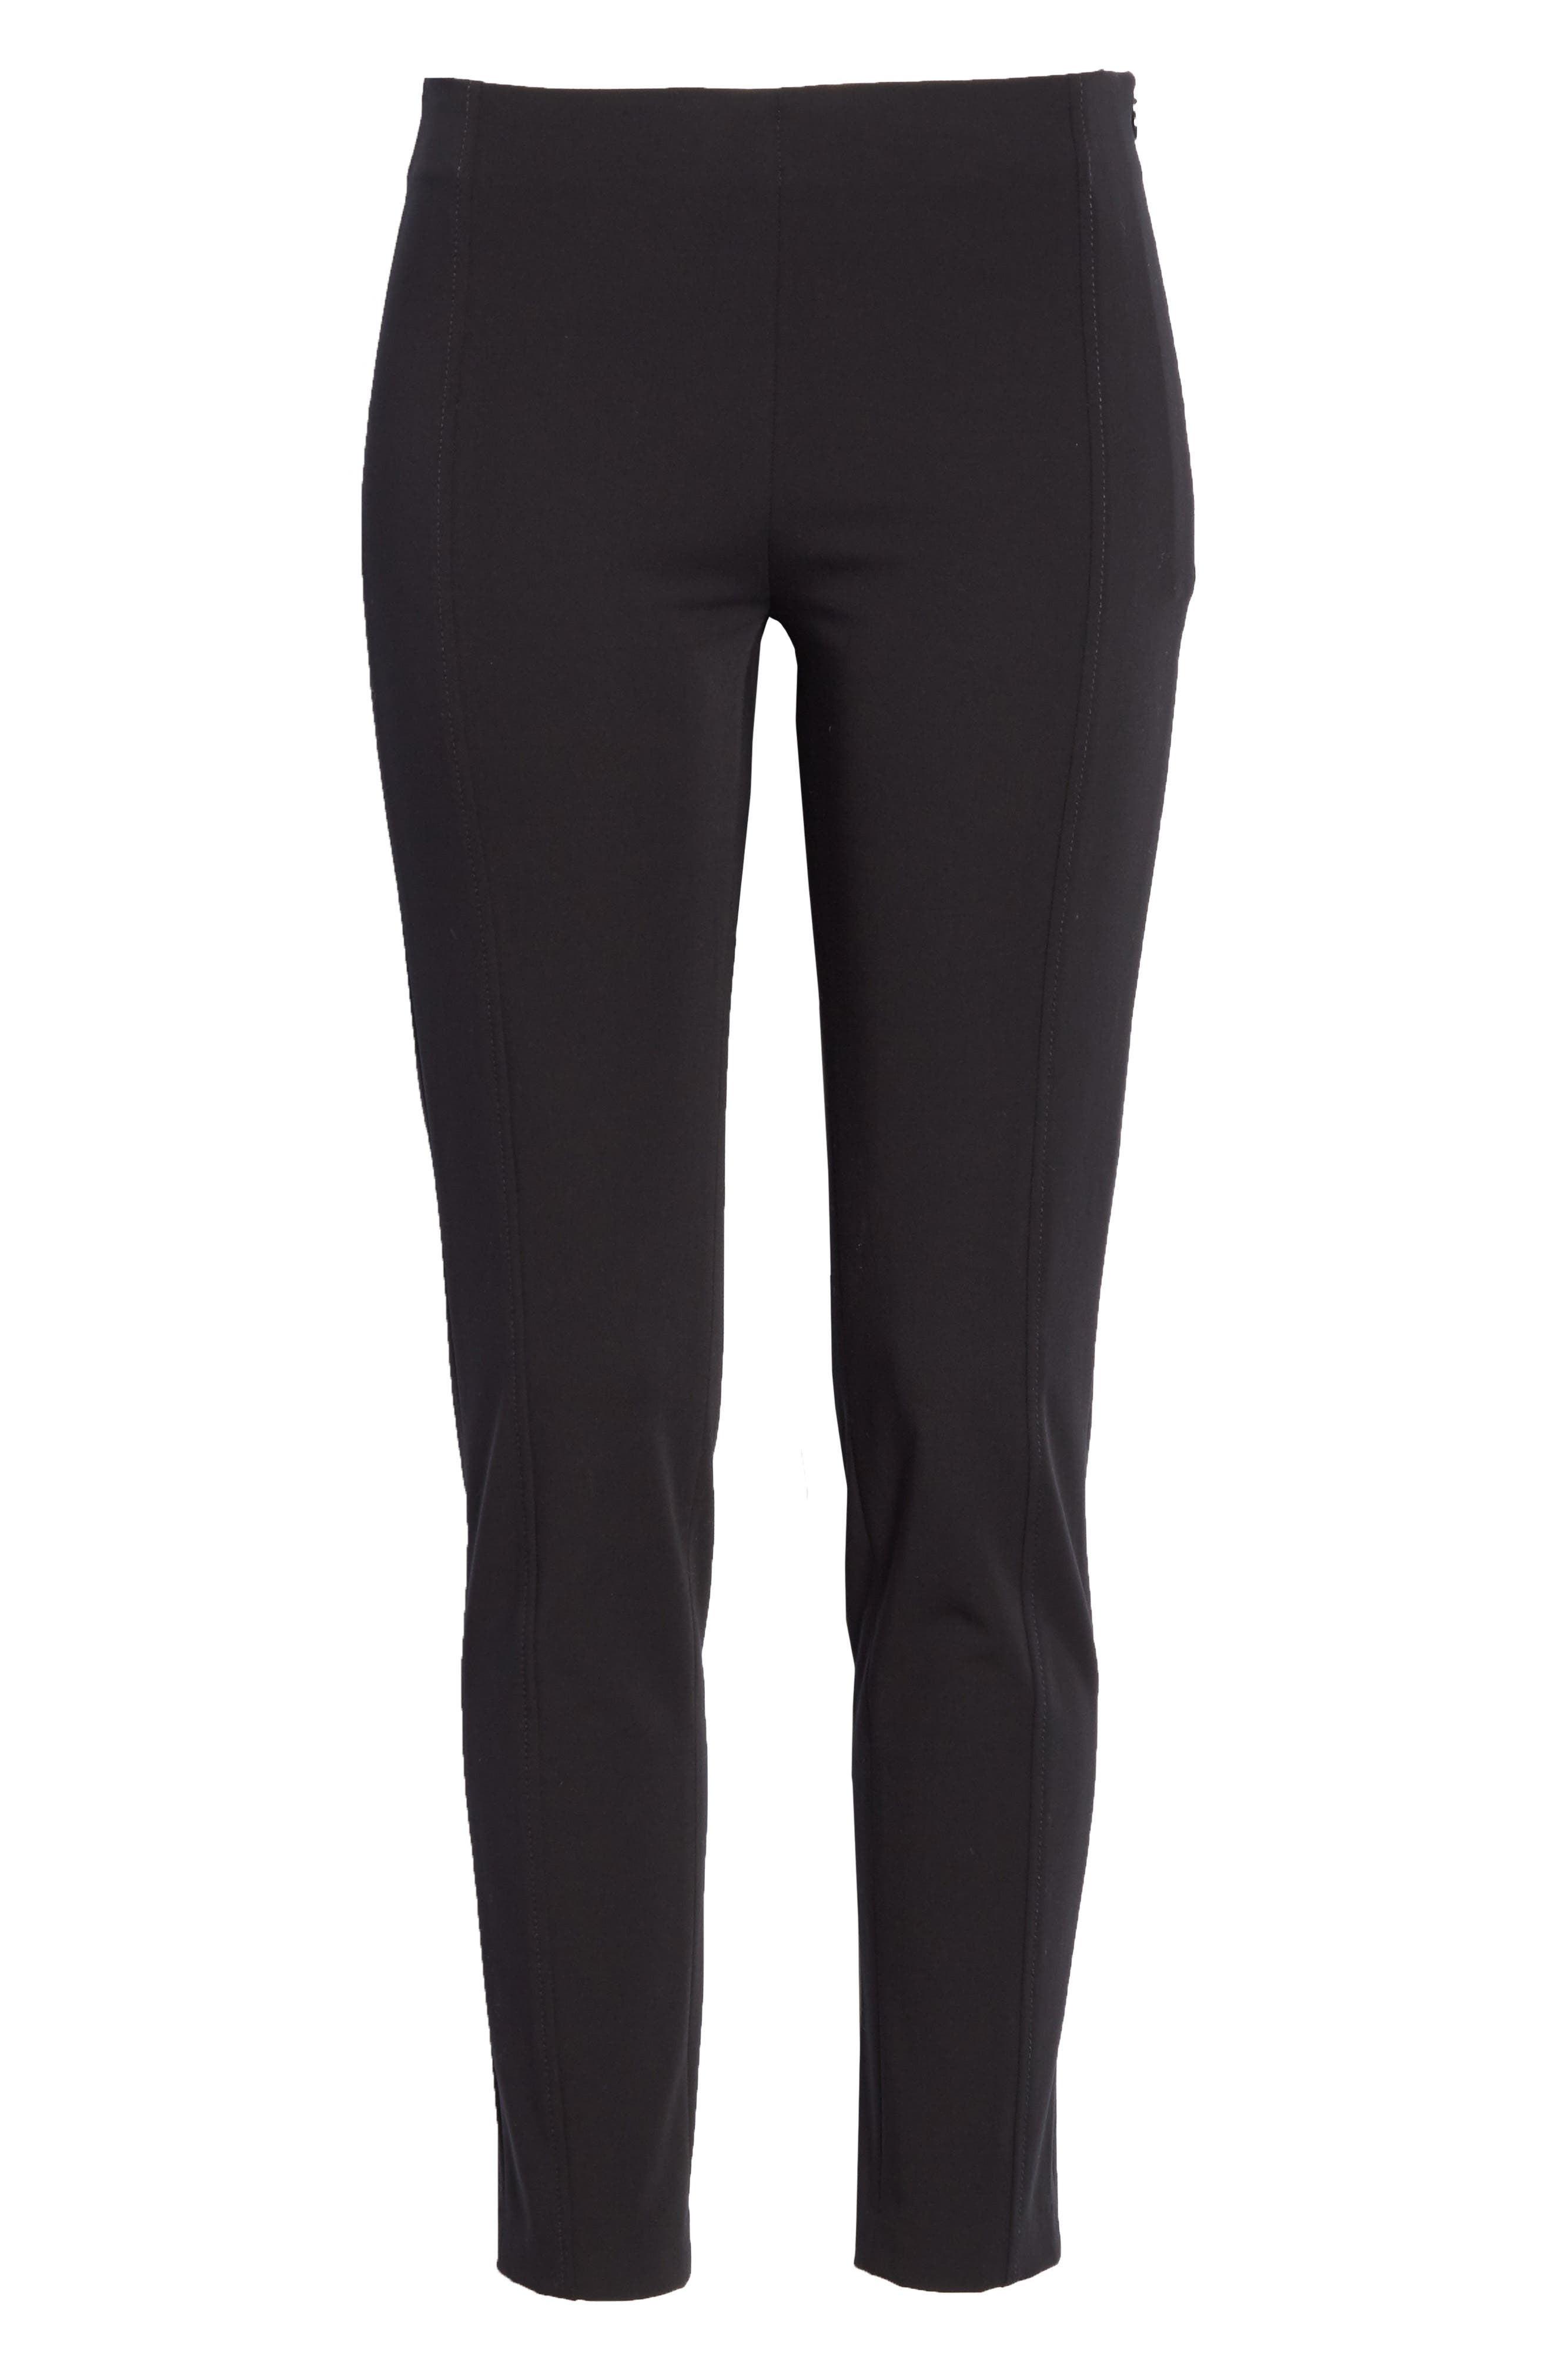 Lenny Slim Stretch Cotton Pants,                             Alternate thumbnail 6, color,                             Black